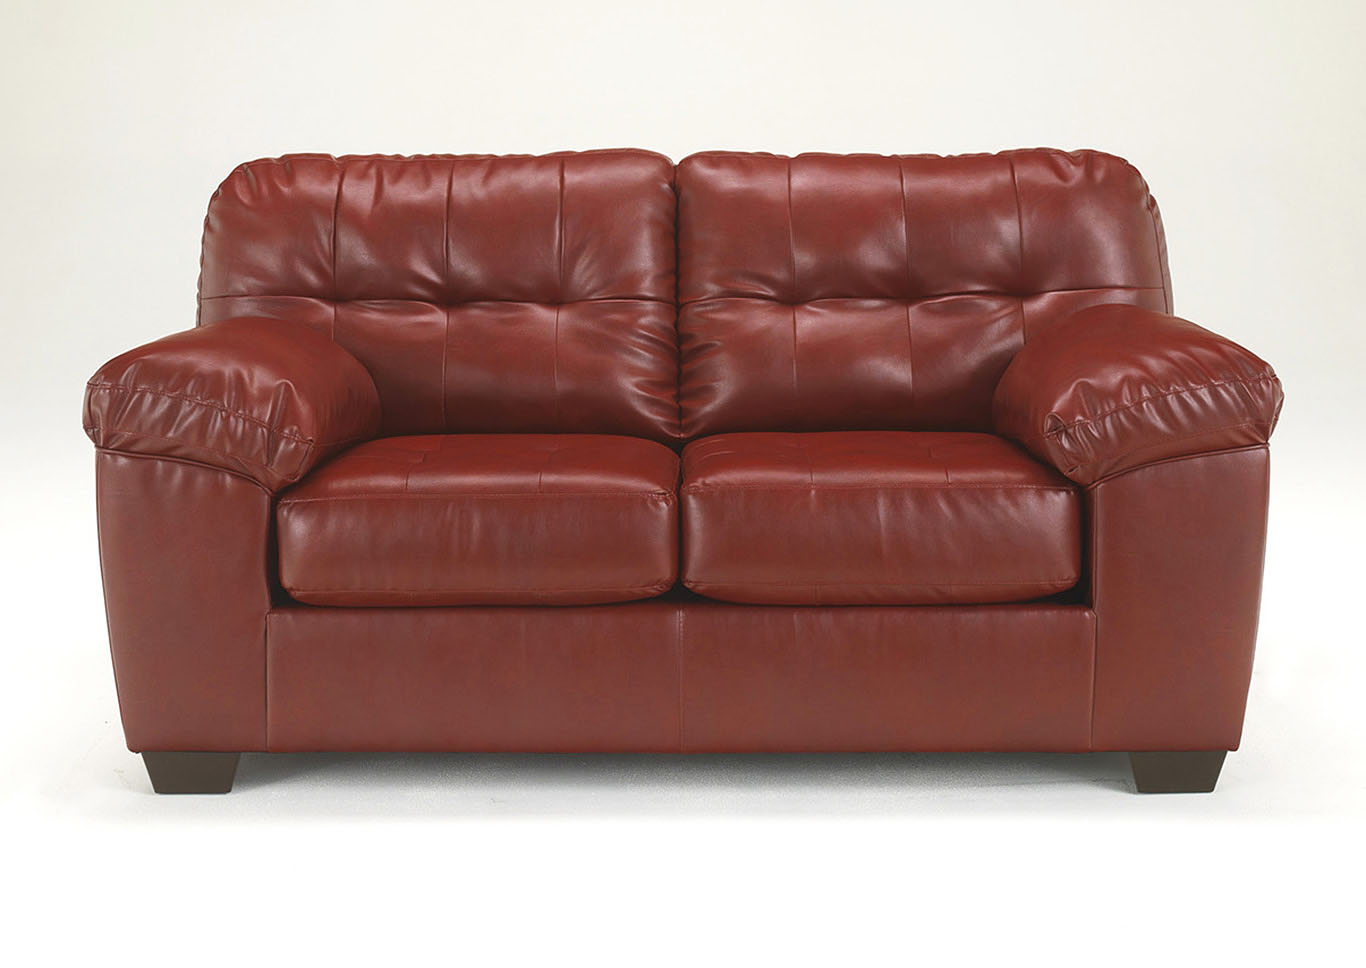 Alliston DuraBlend Salsa Loveseat,Signature Design By Ashley